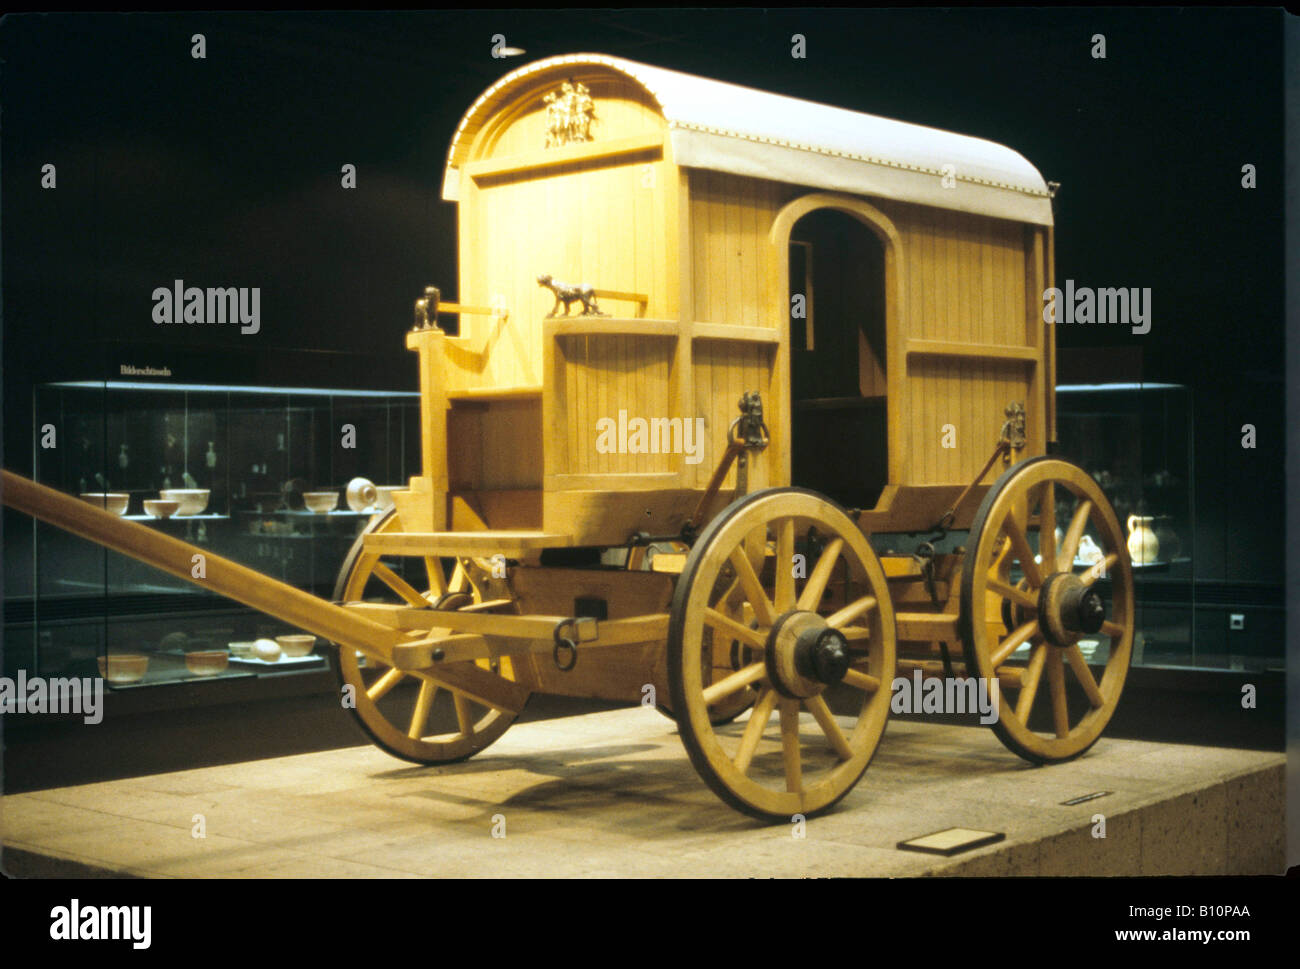 Replica of Roman carriage. Life Size reconstruction. Stock Photo